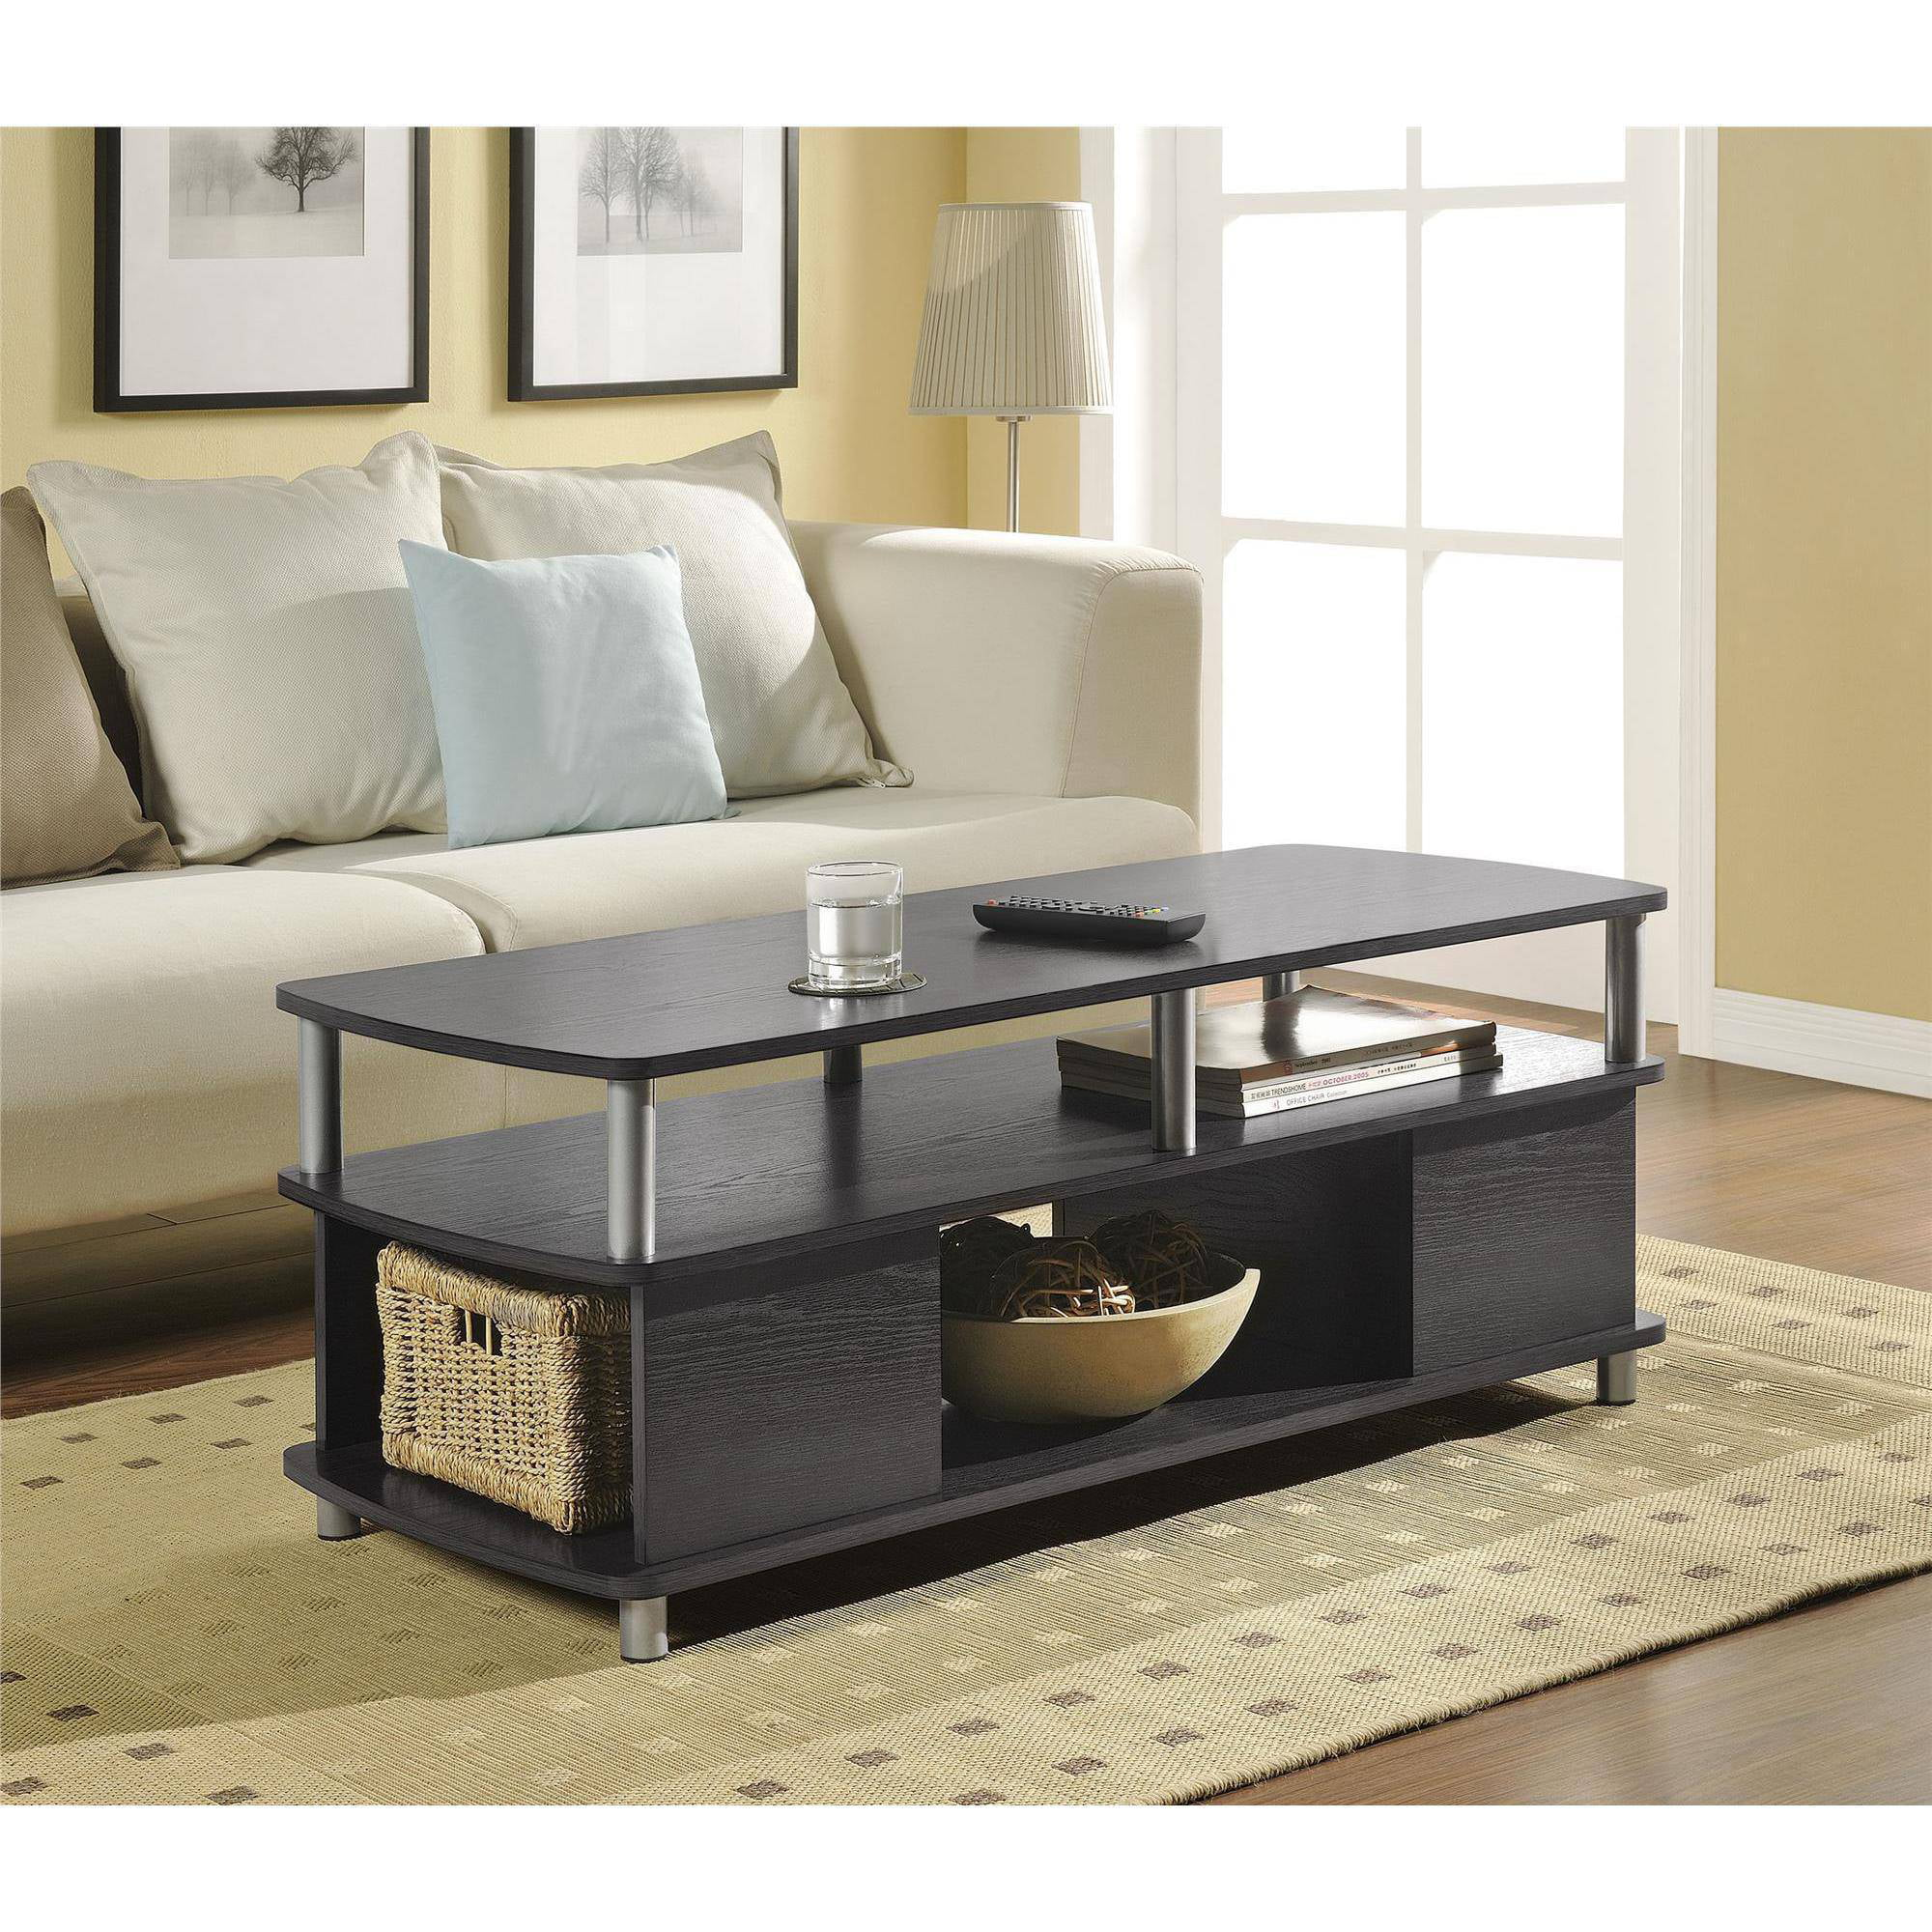 Southern enterprises terrarium glass display coffee table in black southern enterprises terrarium glass display coffee table in black walmart geotapseo Images